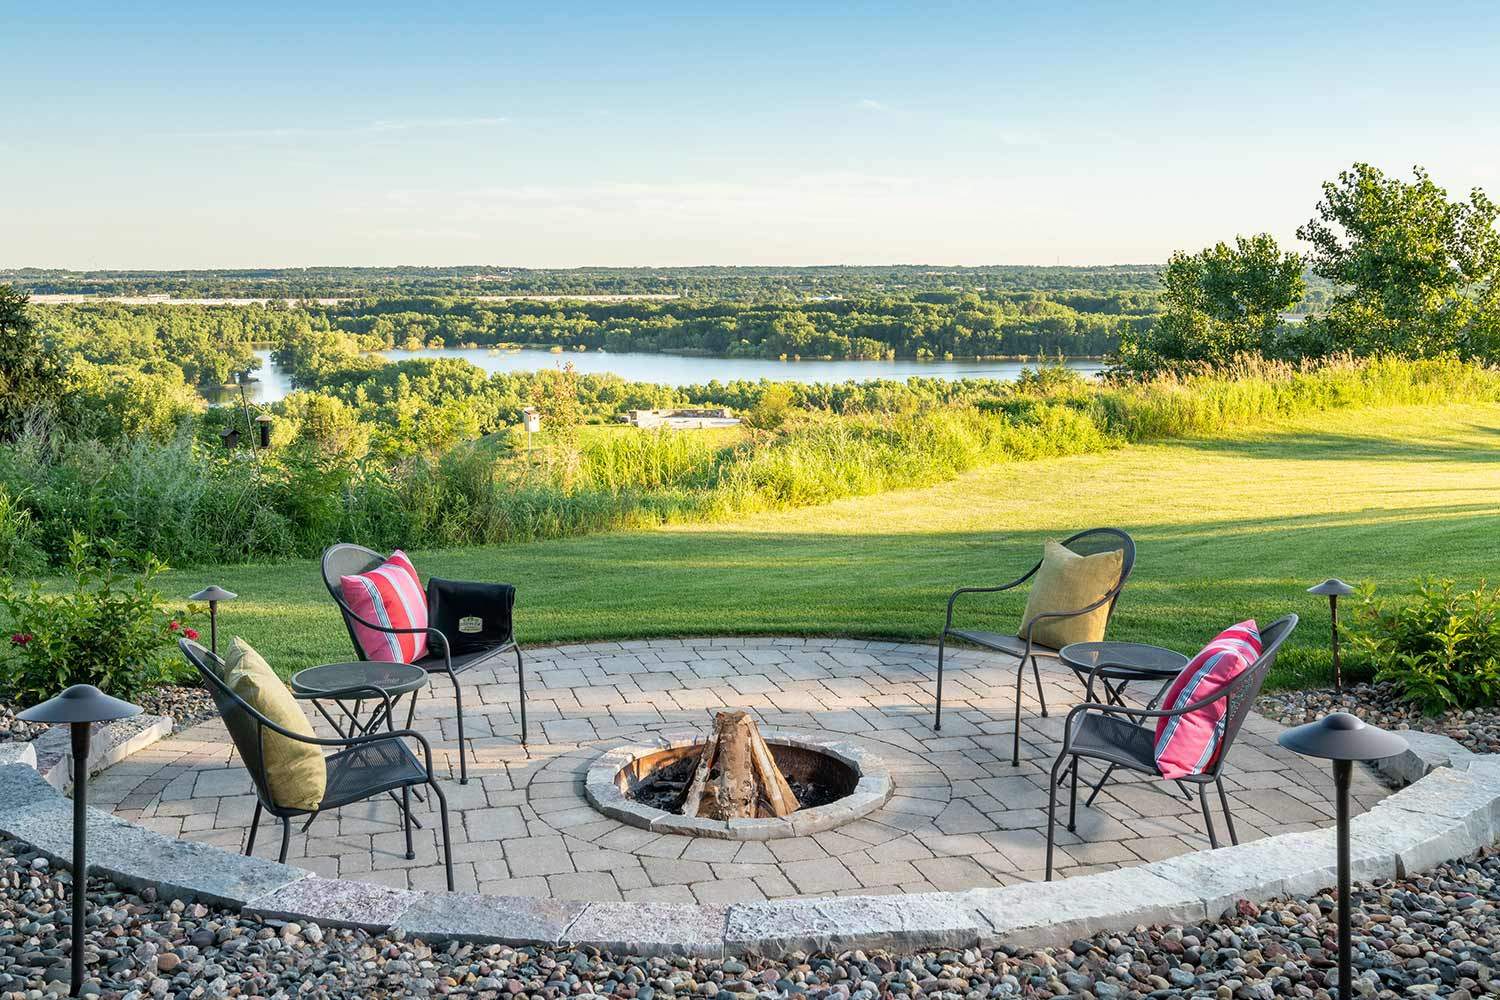 wood-burning fire pit overlooking the minnesota river in eden prairie, mn